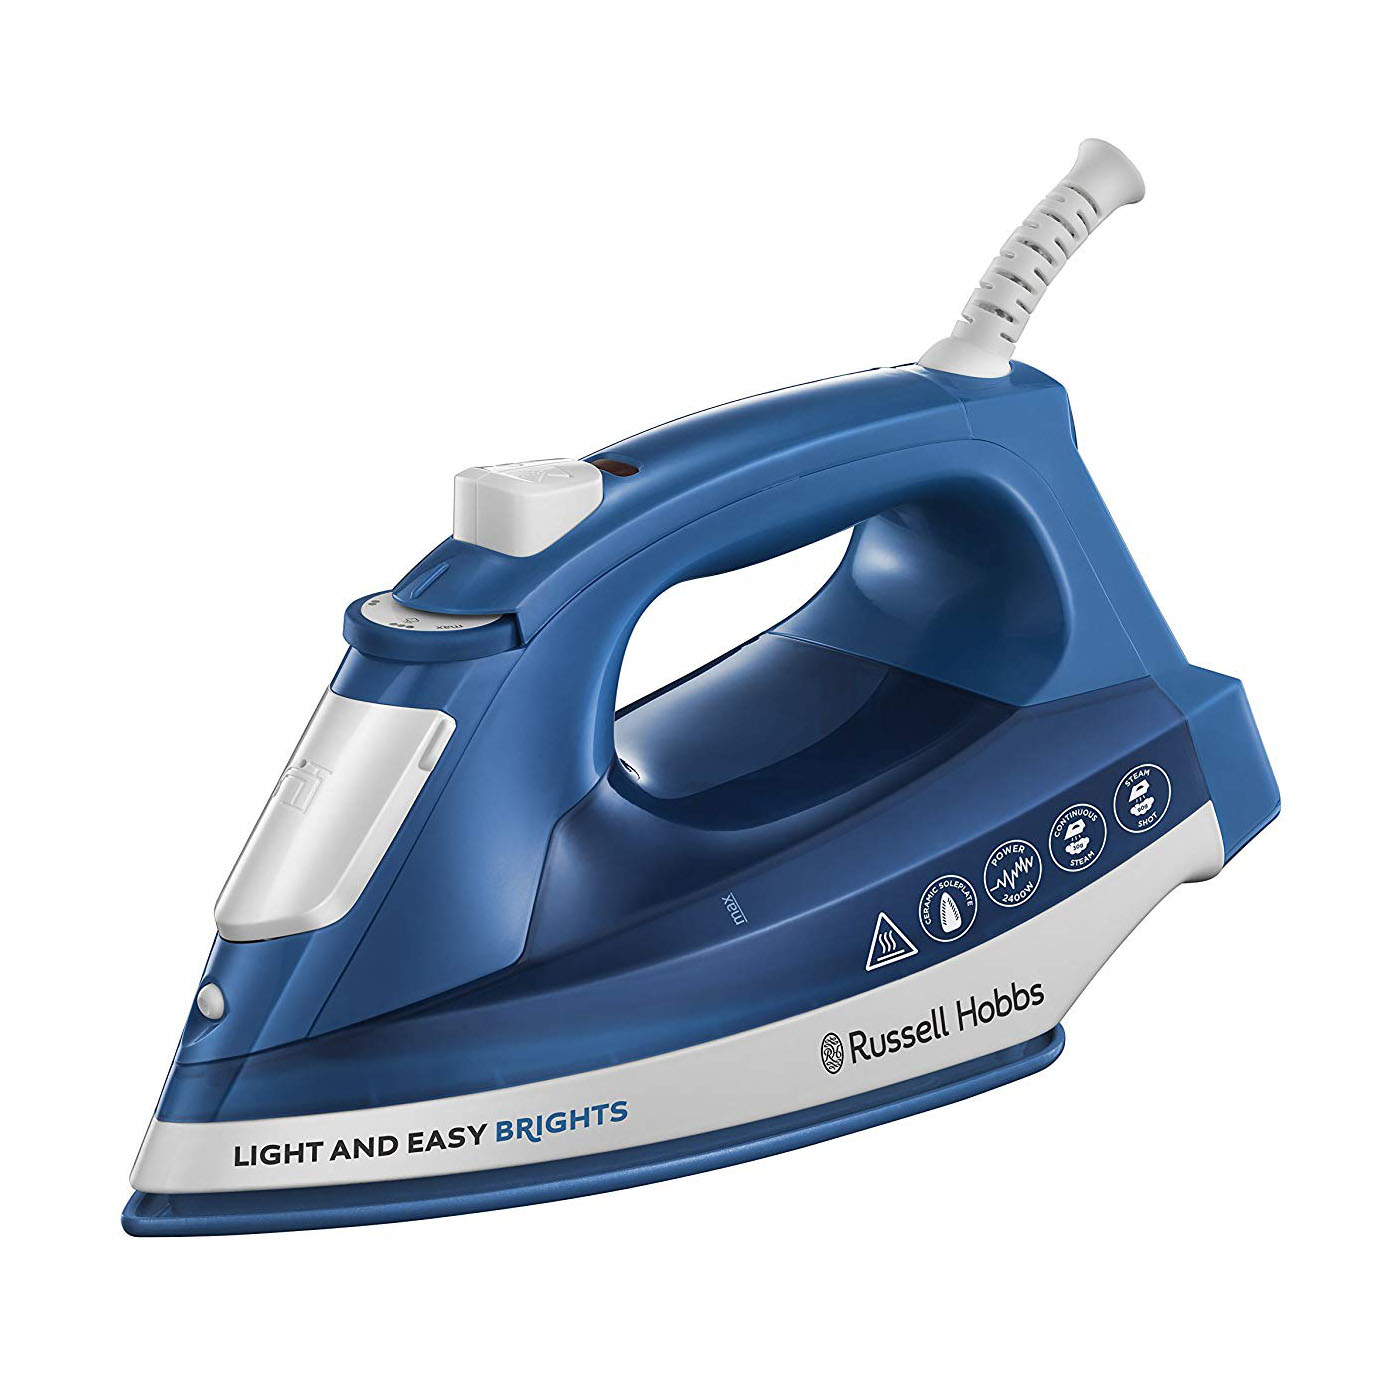 Russell Hobbs 24830 Light and Easy Brights Ceramic Iron - Sapphire